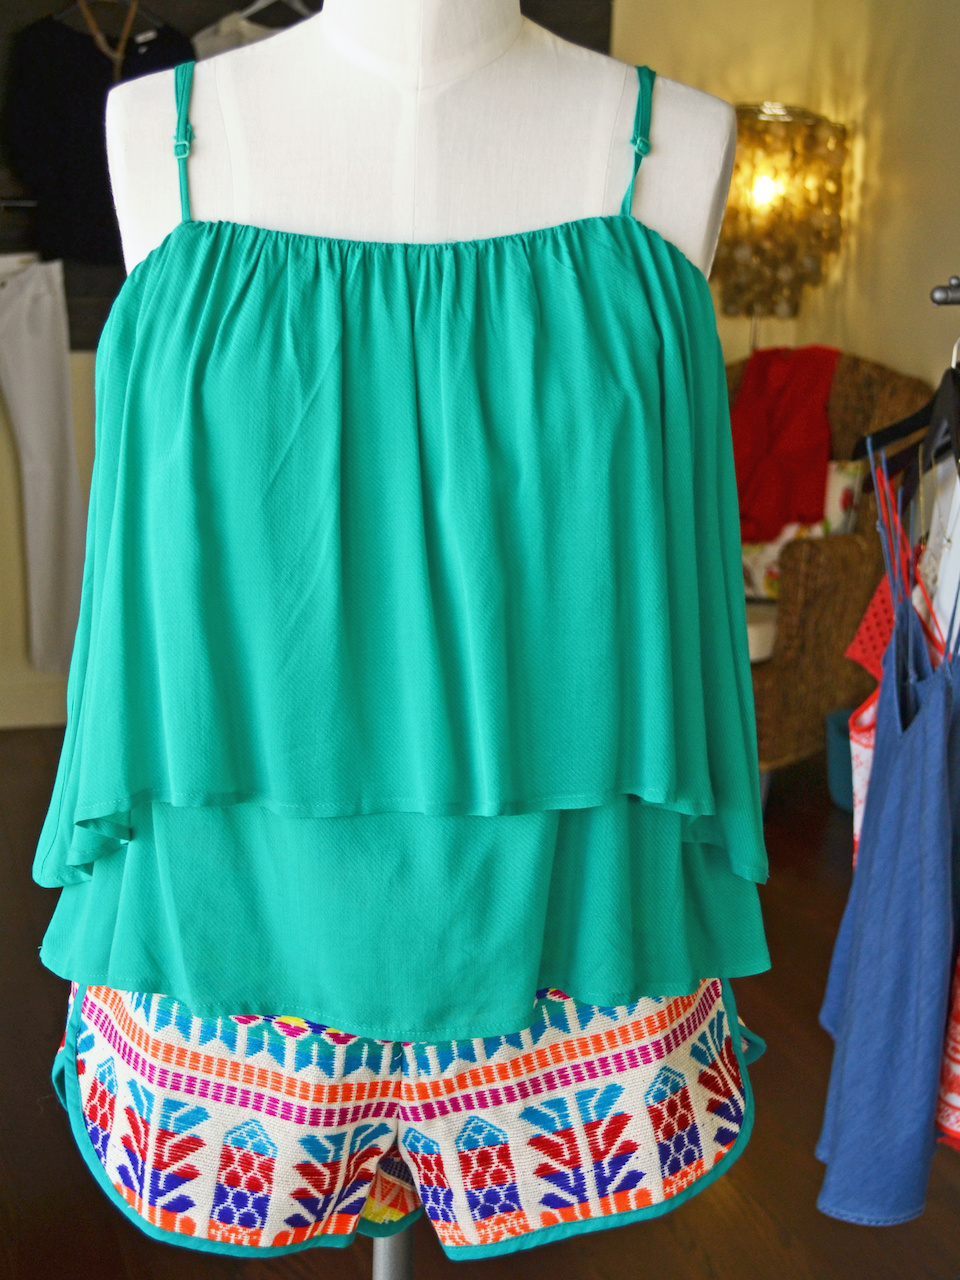 Keep cool at Forecastle with this tank and shorts